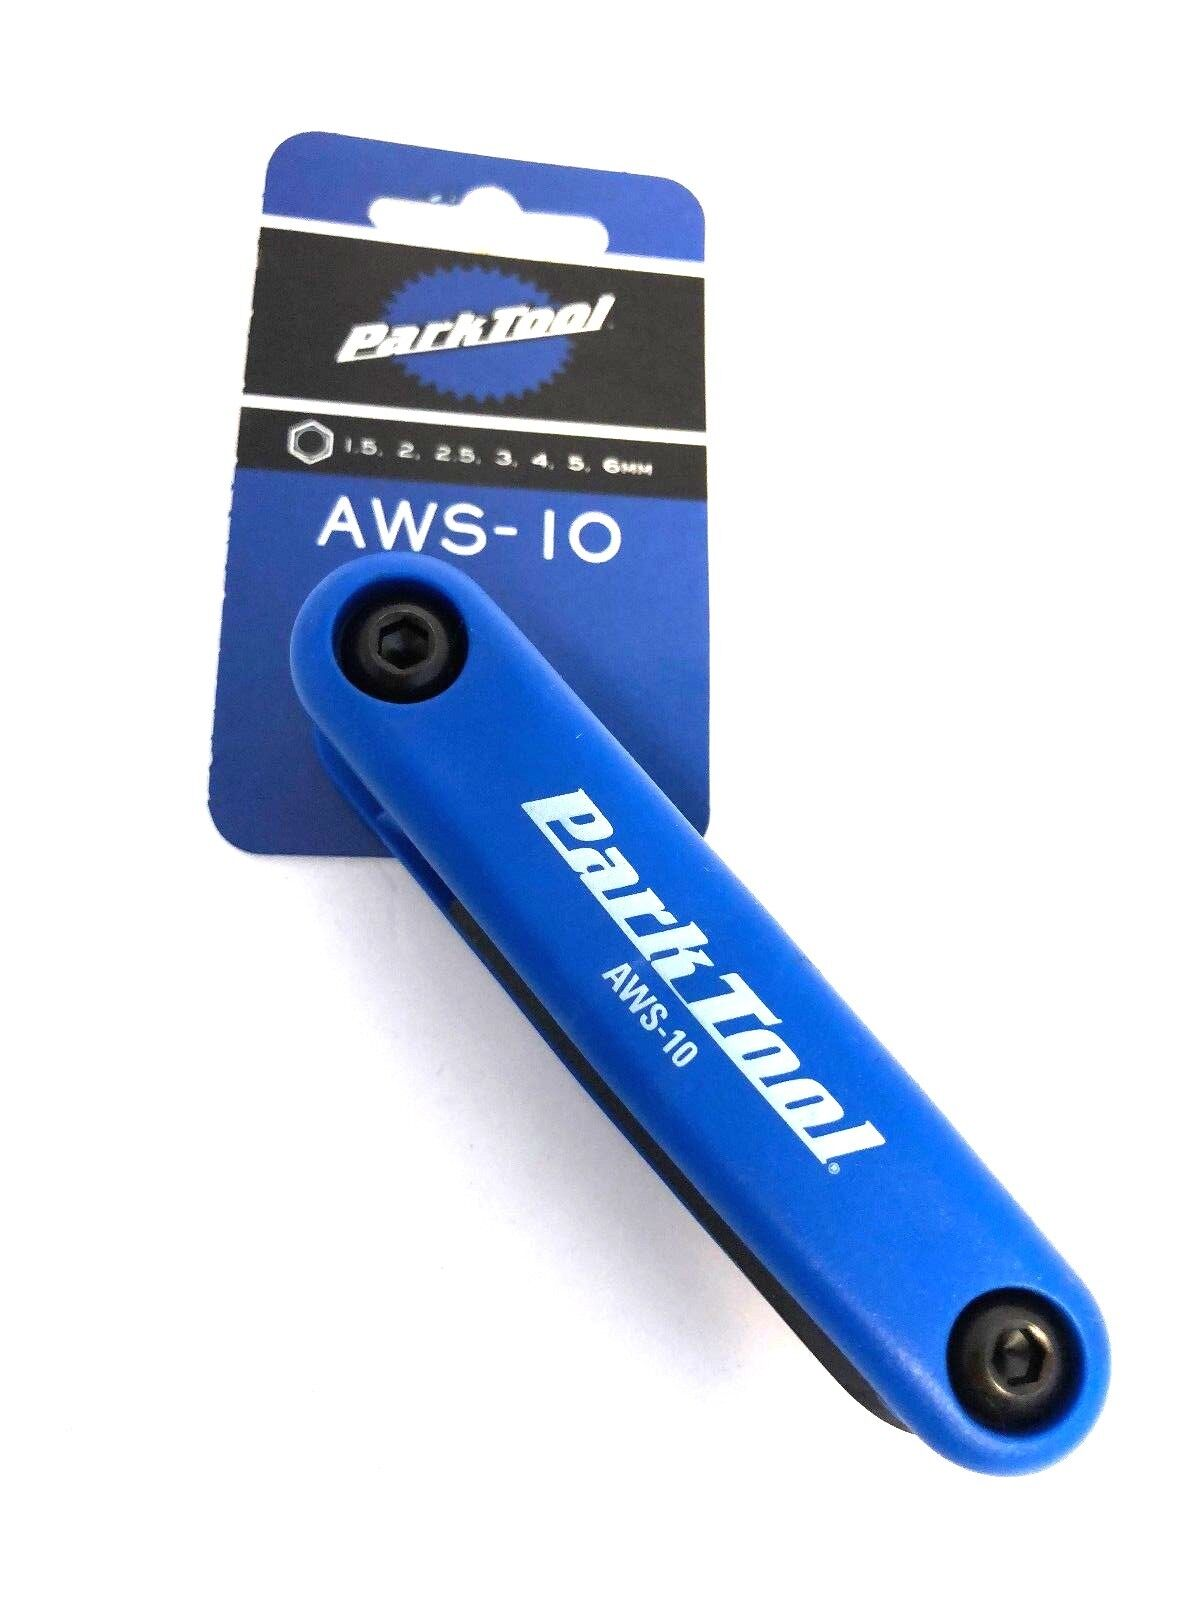 Park Tool AWS-10 Metric Folding Allen Hex Wrench 1.5-6mm Bicycle Multi-Tool